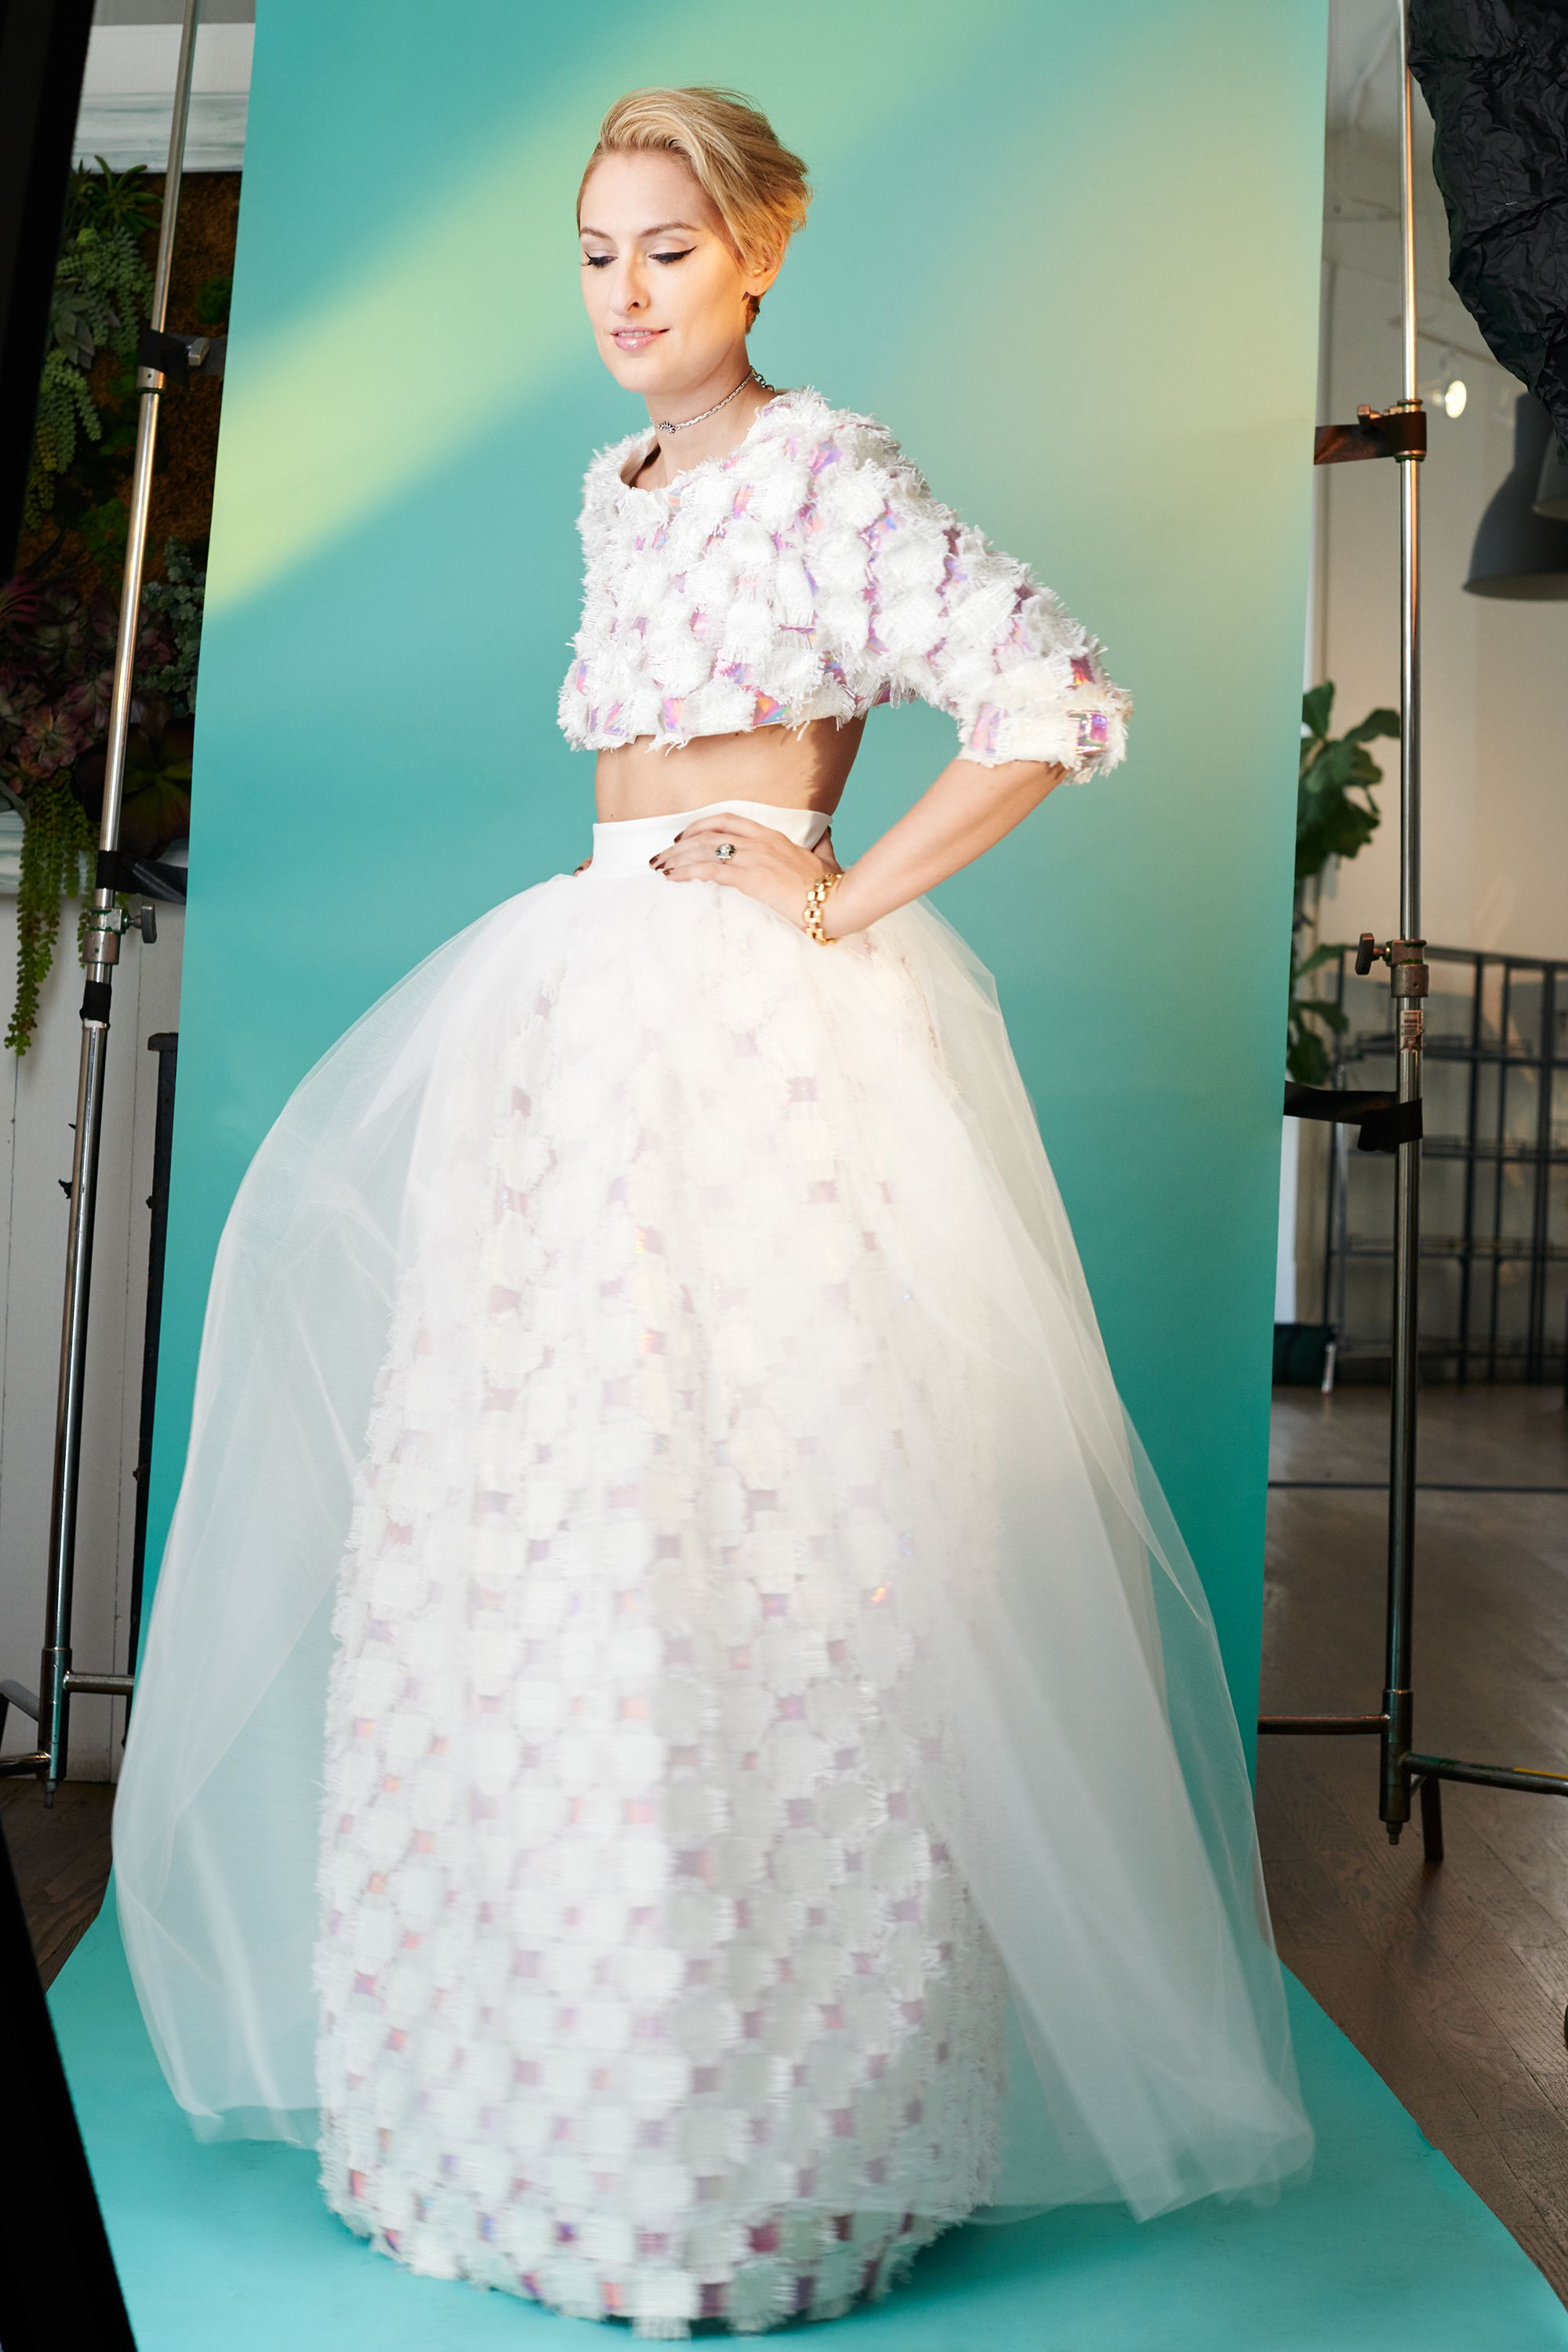 34 Houghton Fall 2017 Wedding Dresses - See Entire Houghton Bridal ...